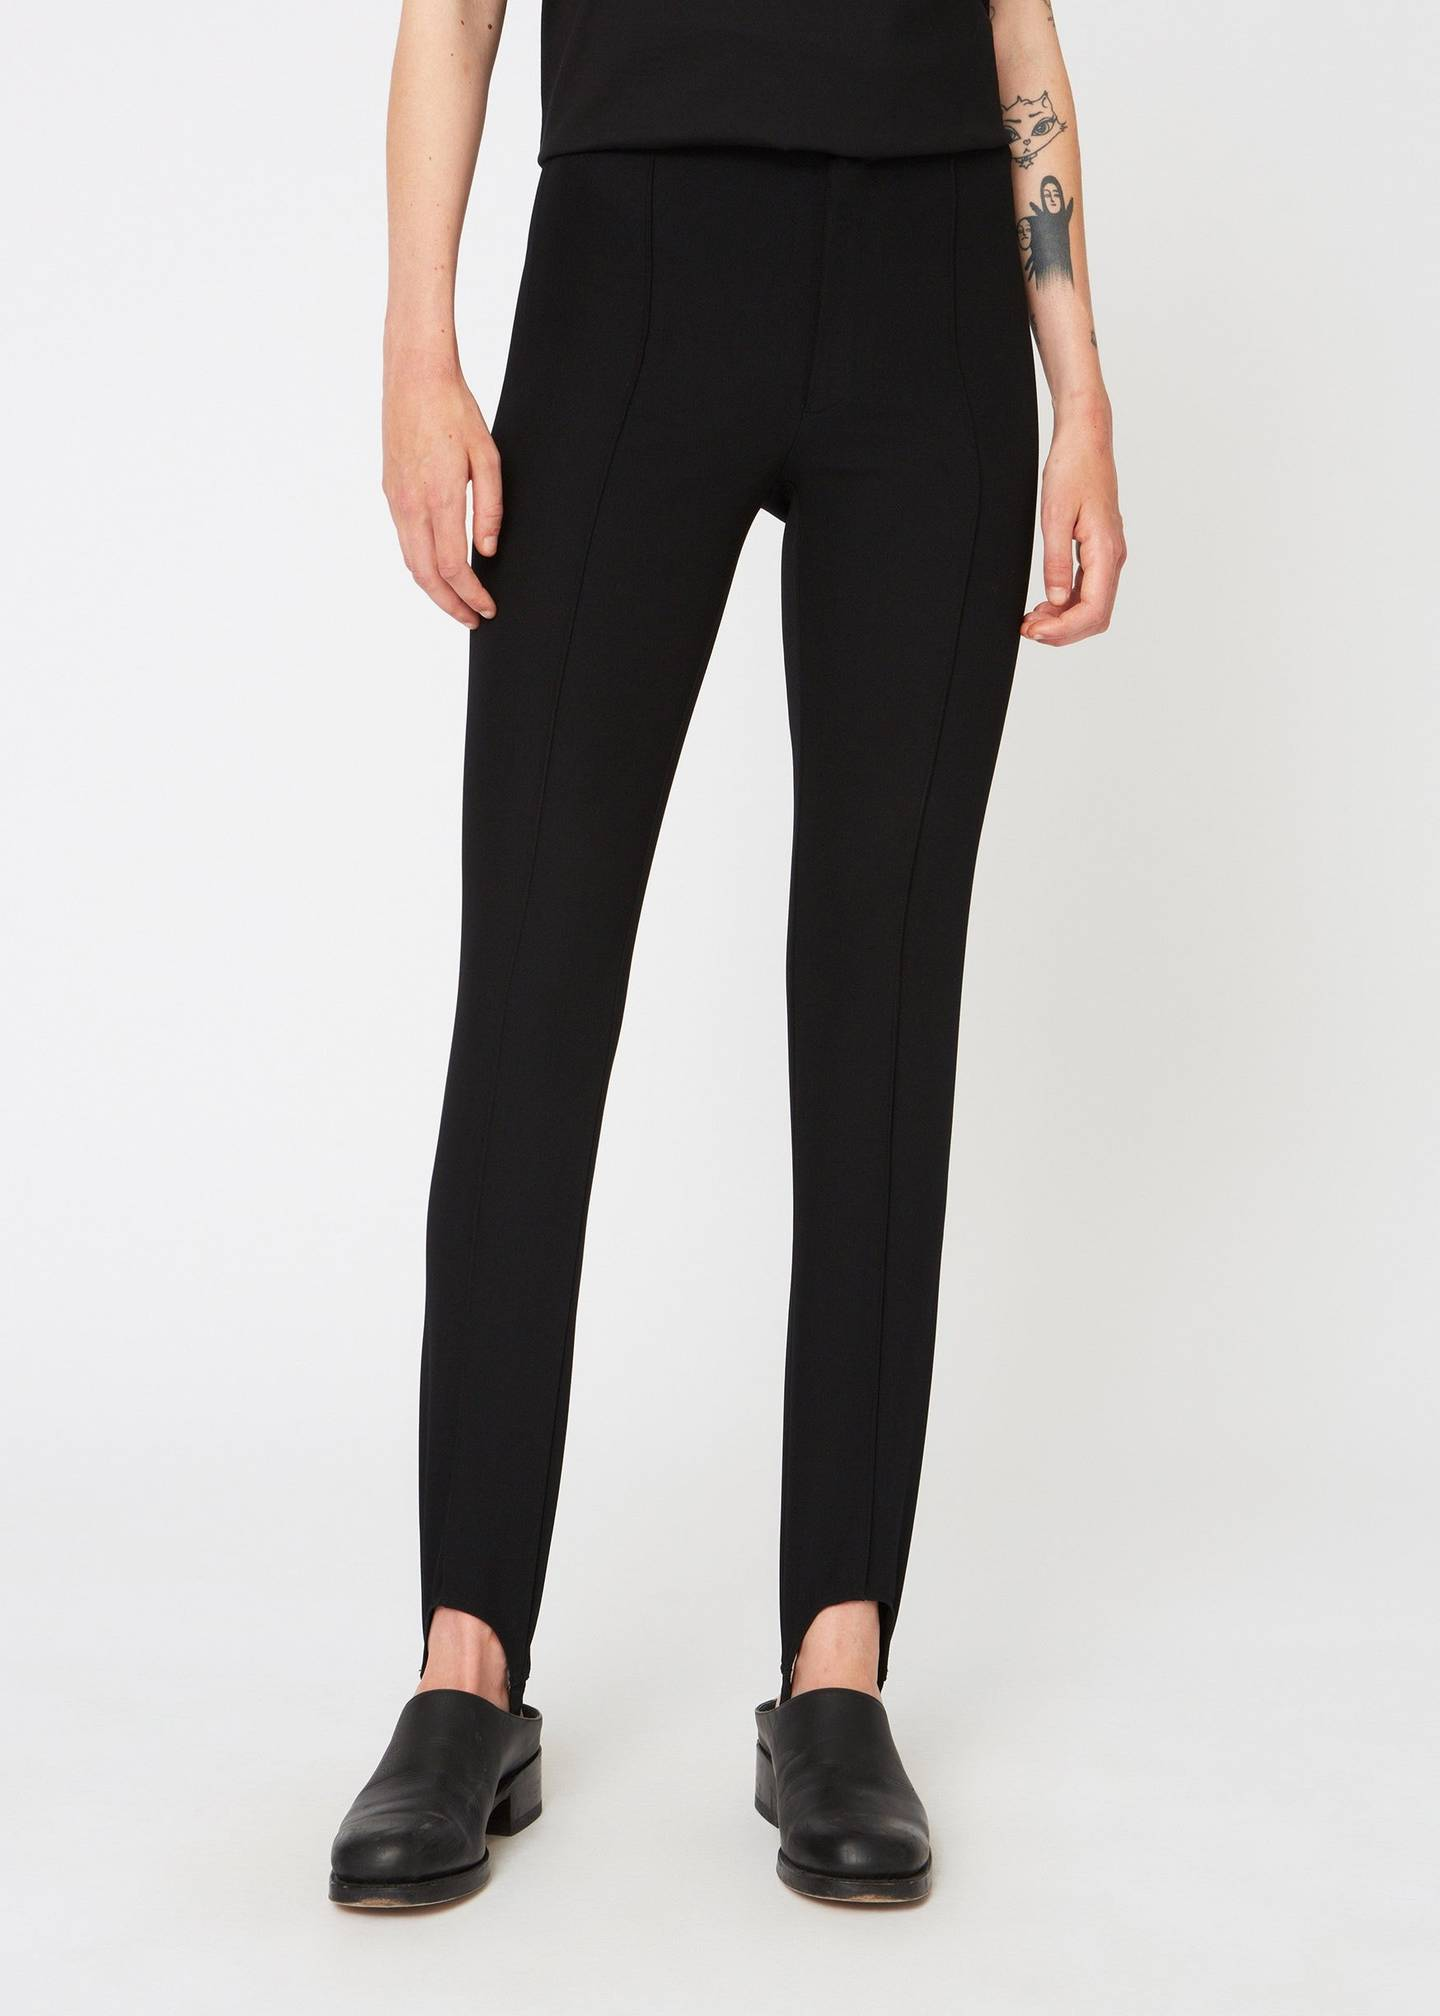 SNUG TROUSER IN BLACK BY HOPE